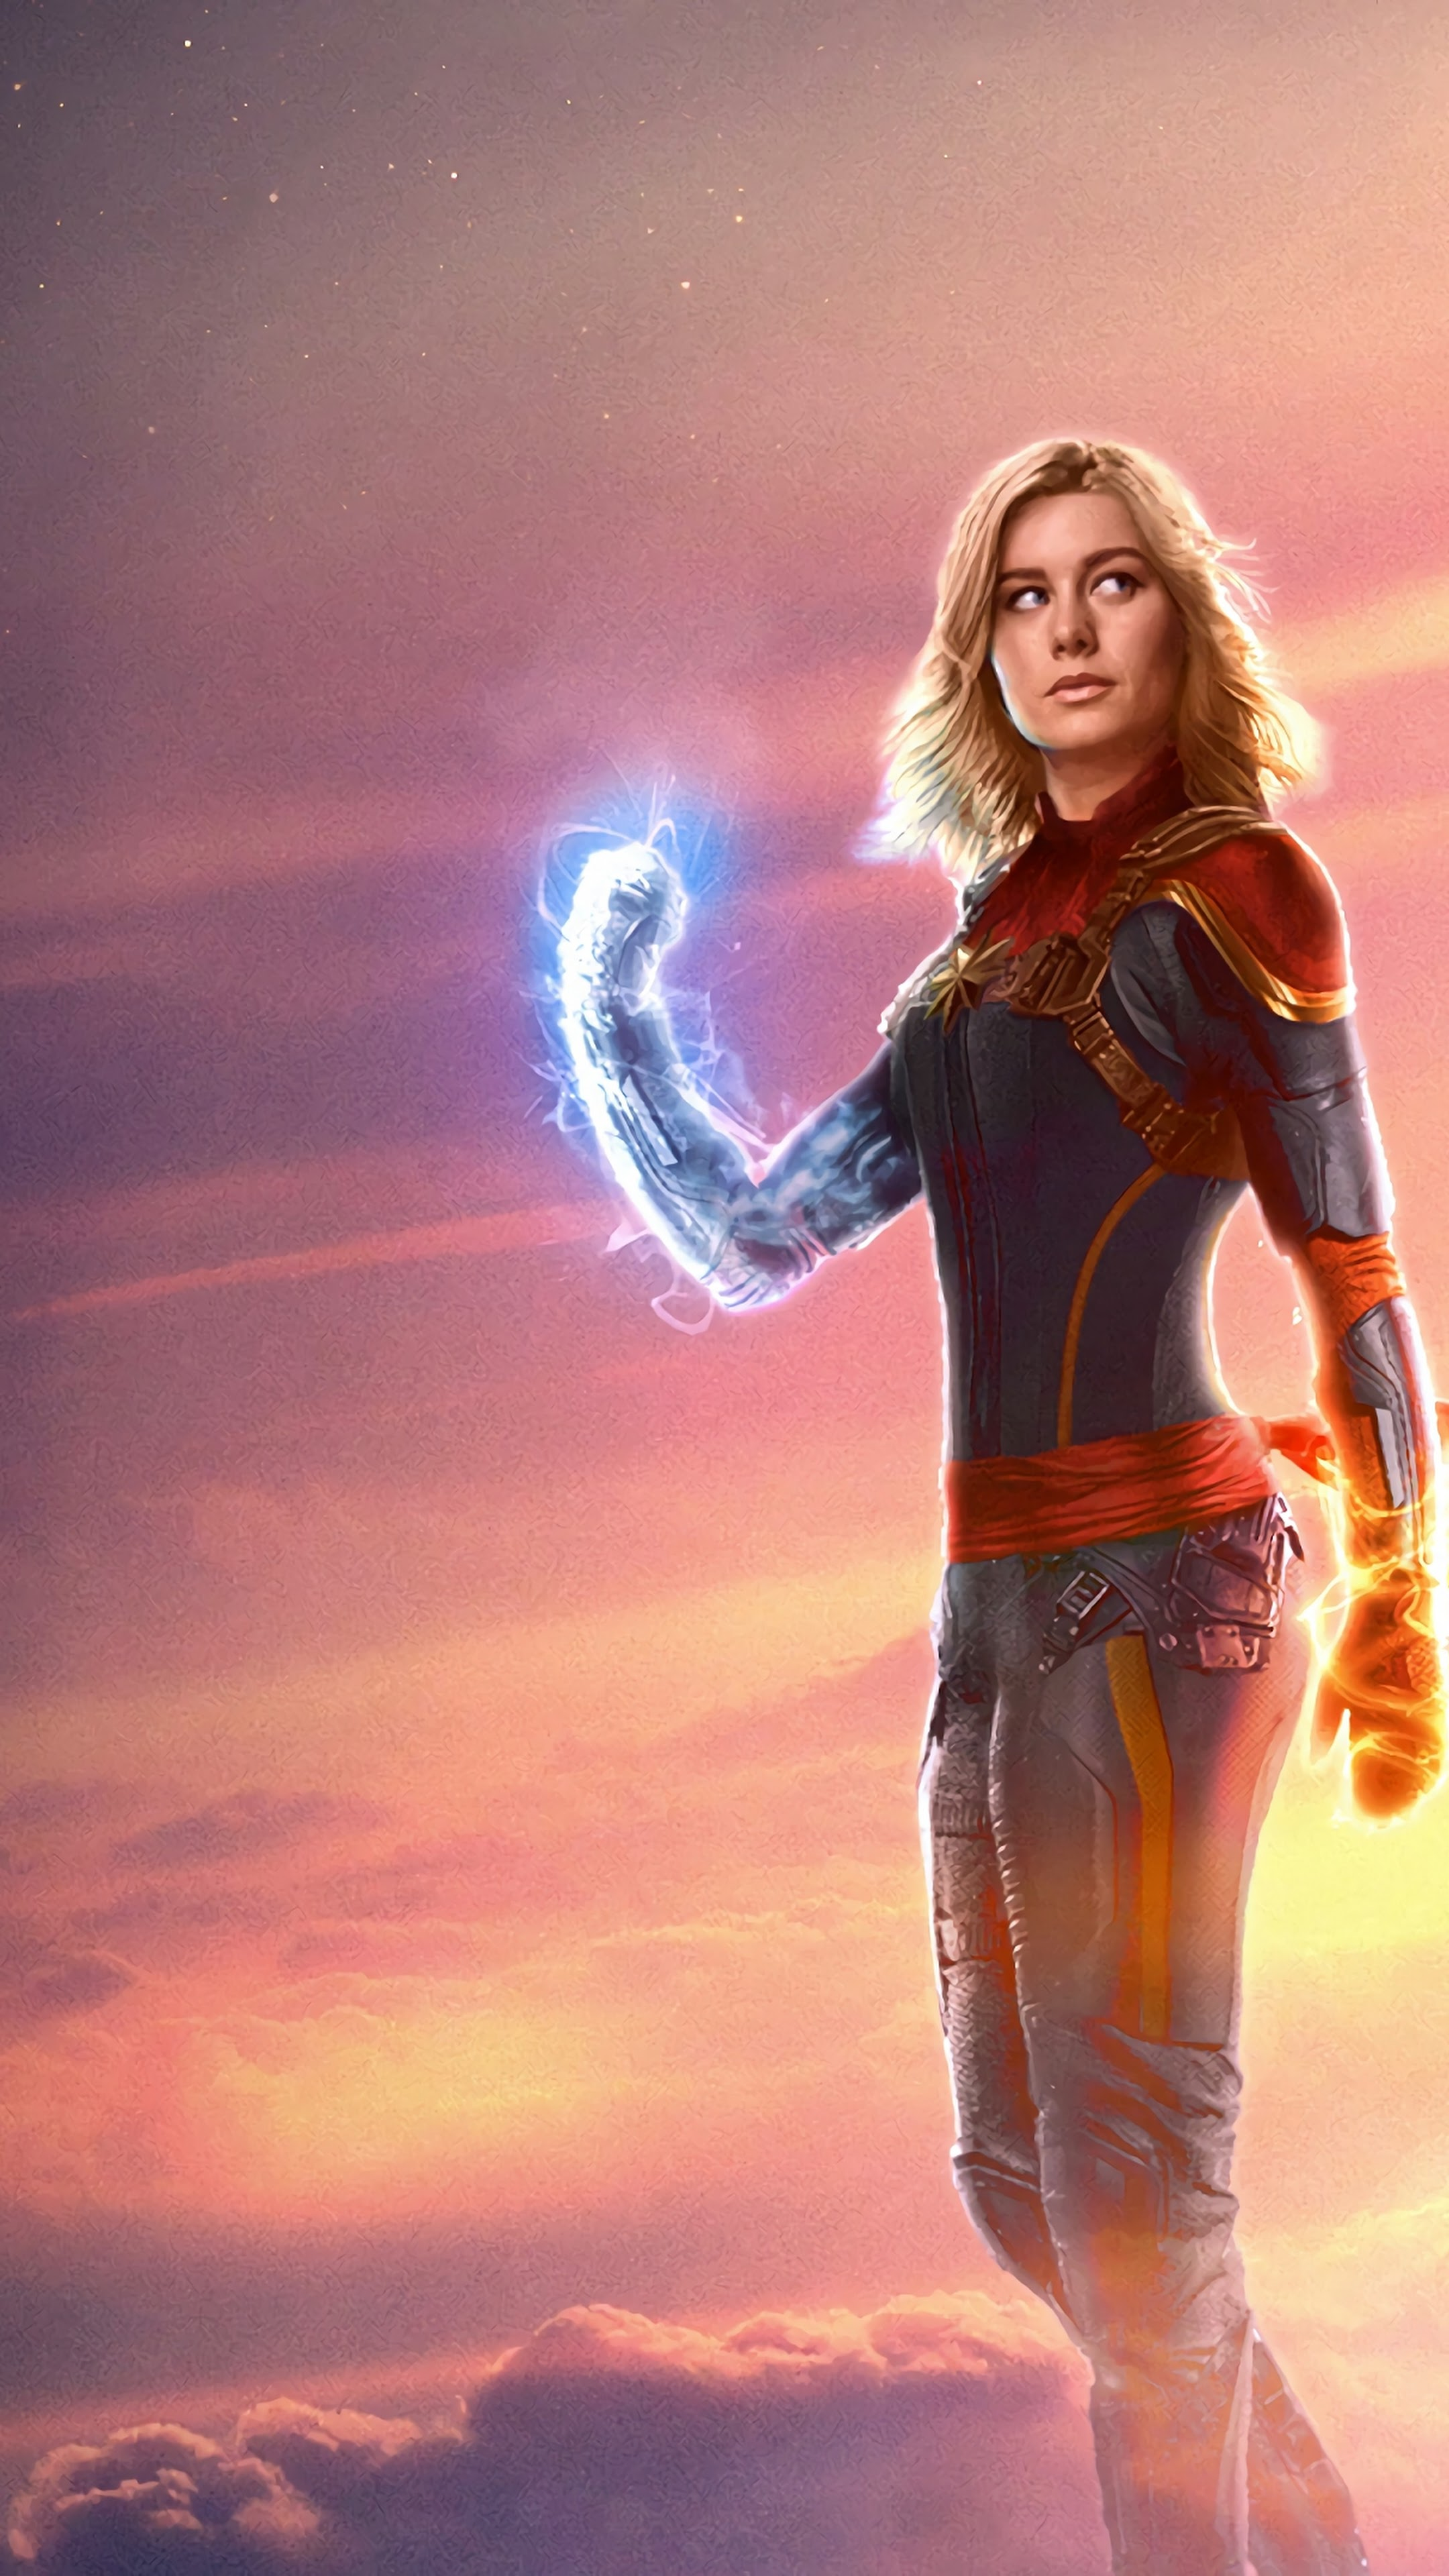 Captain Marvel Movie Brie Larson 4k Wallpaper 27